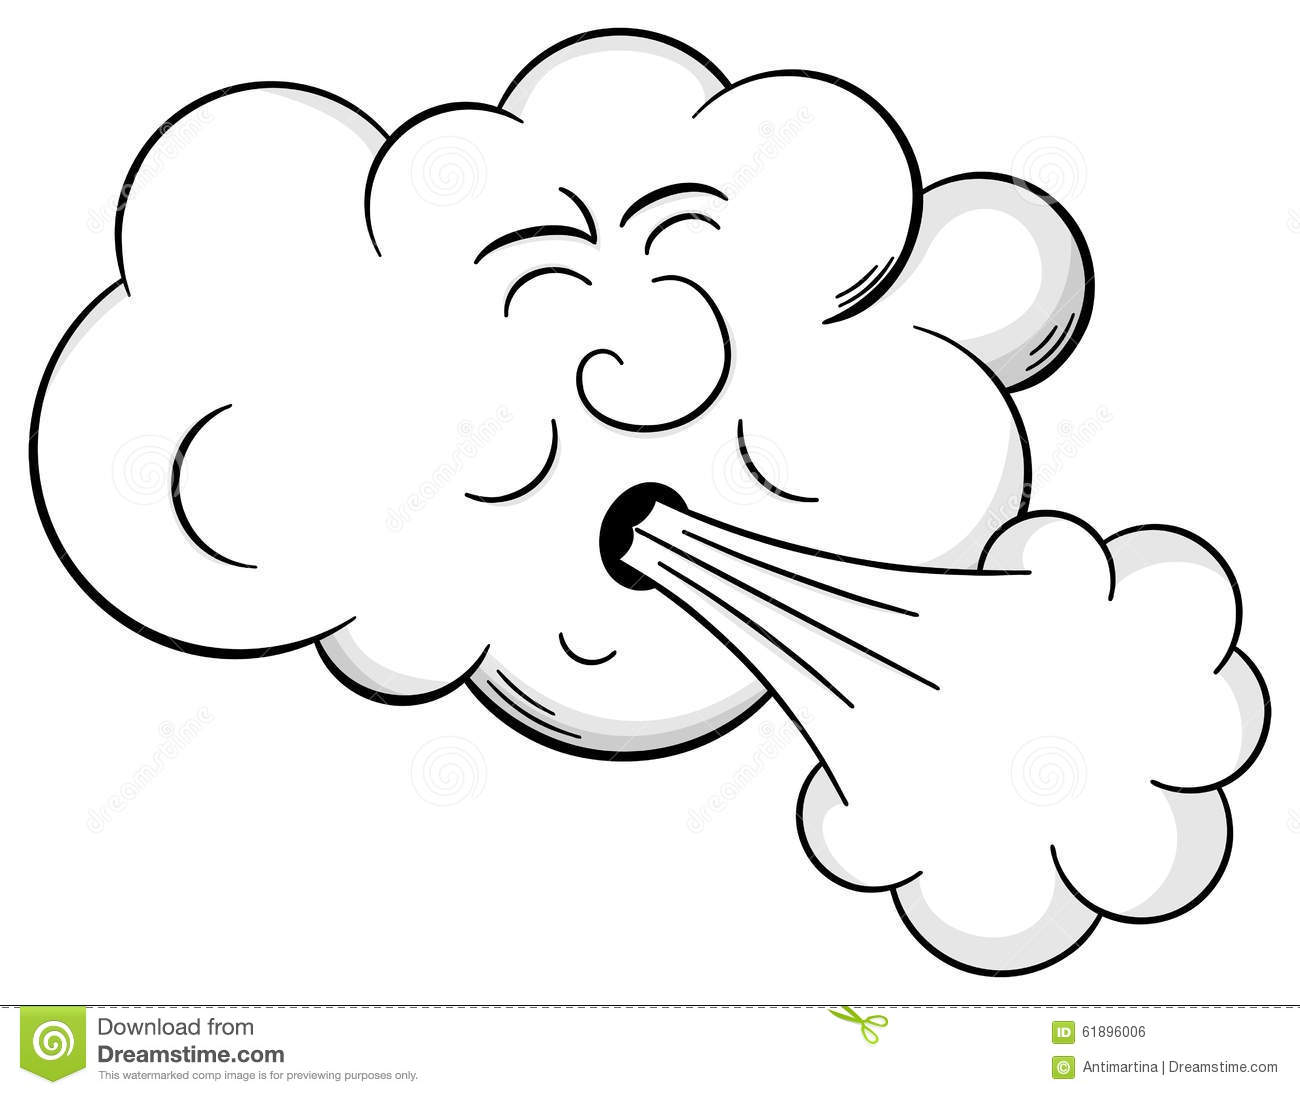 Cartoon Cloud Blows Wind Stock Vector Illustration Of